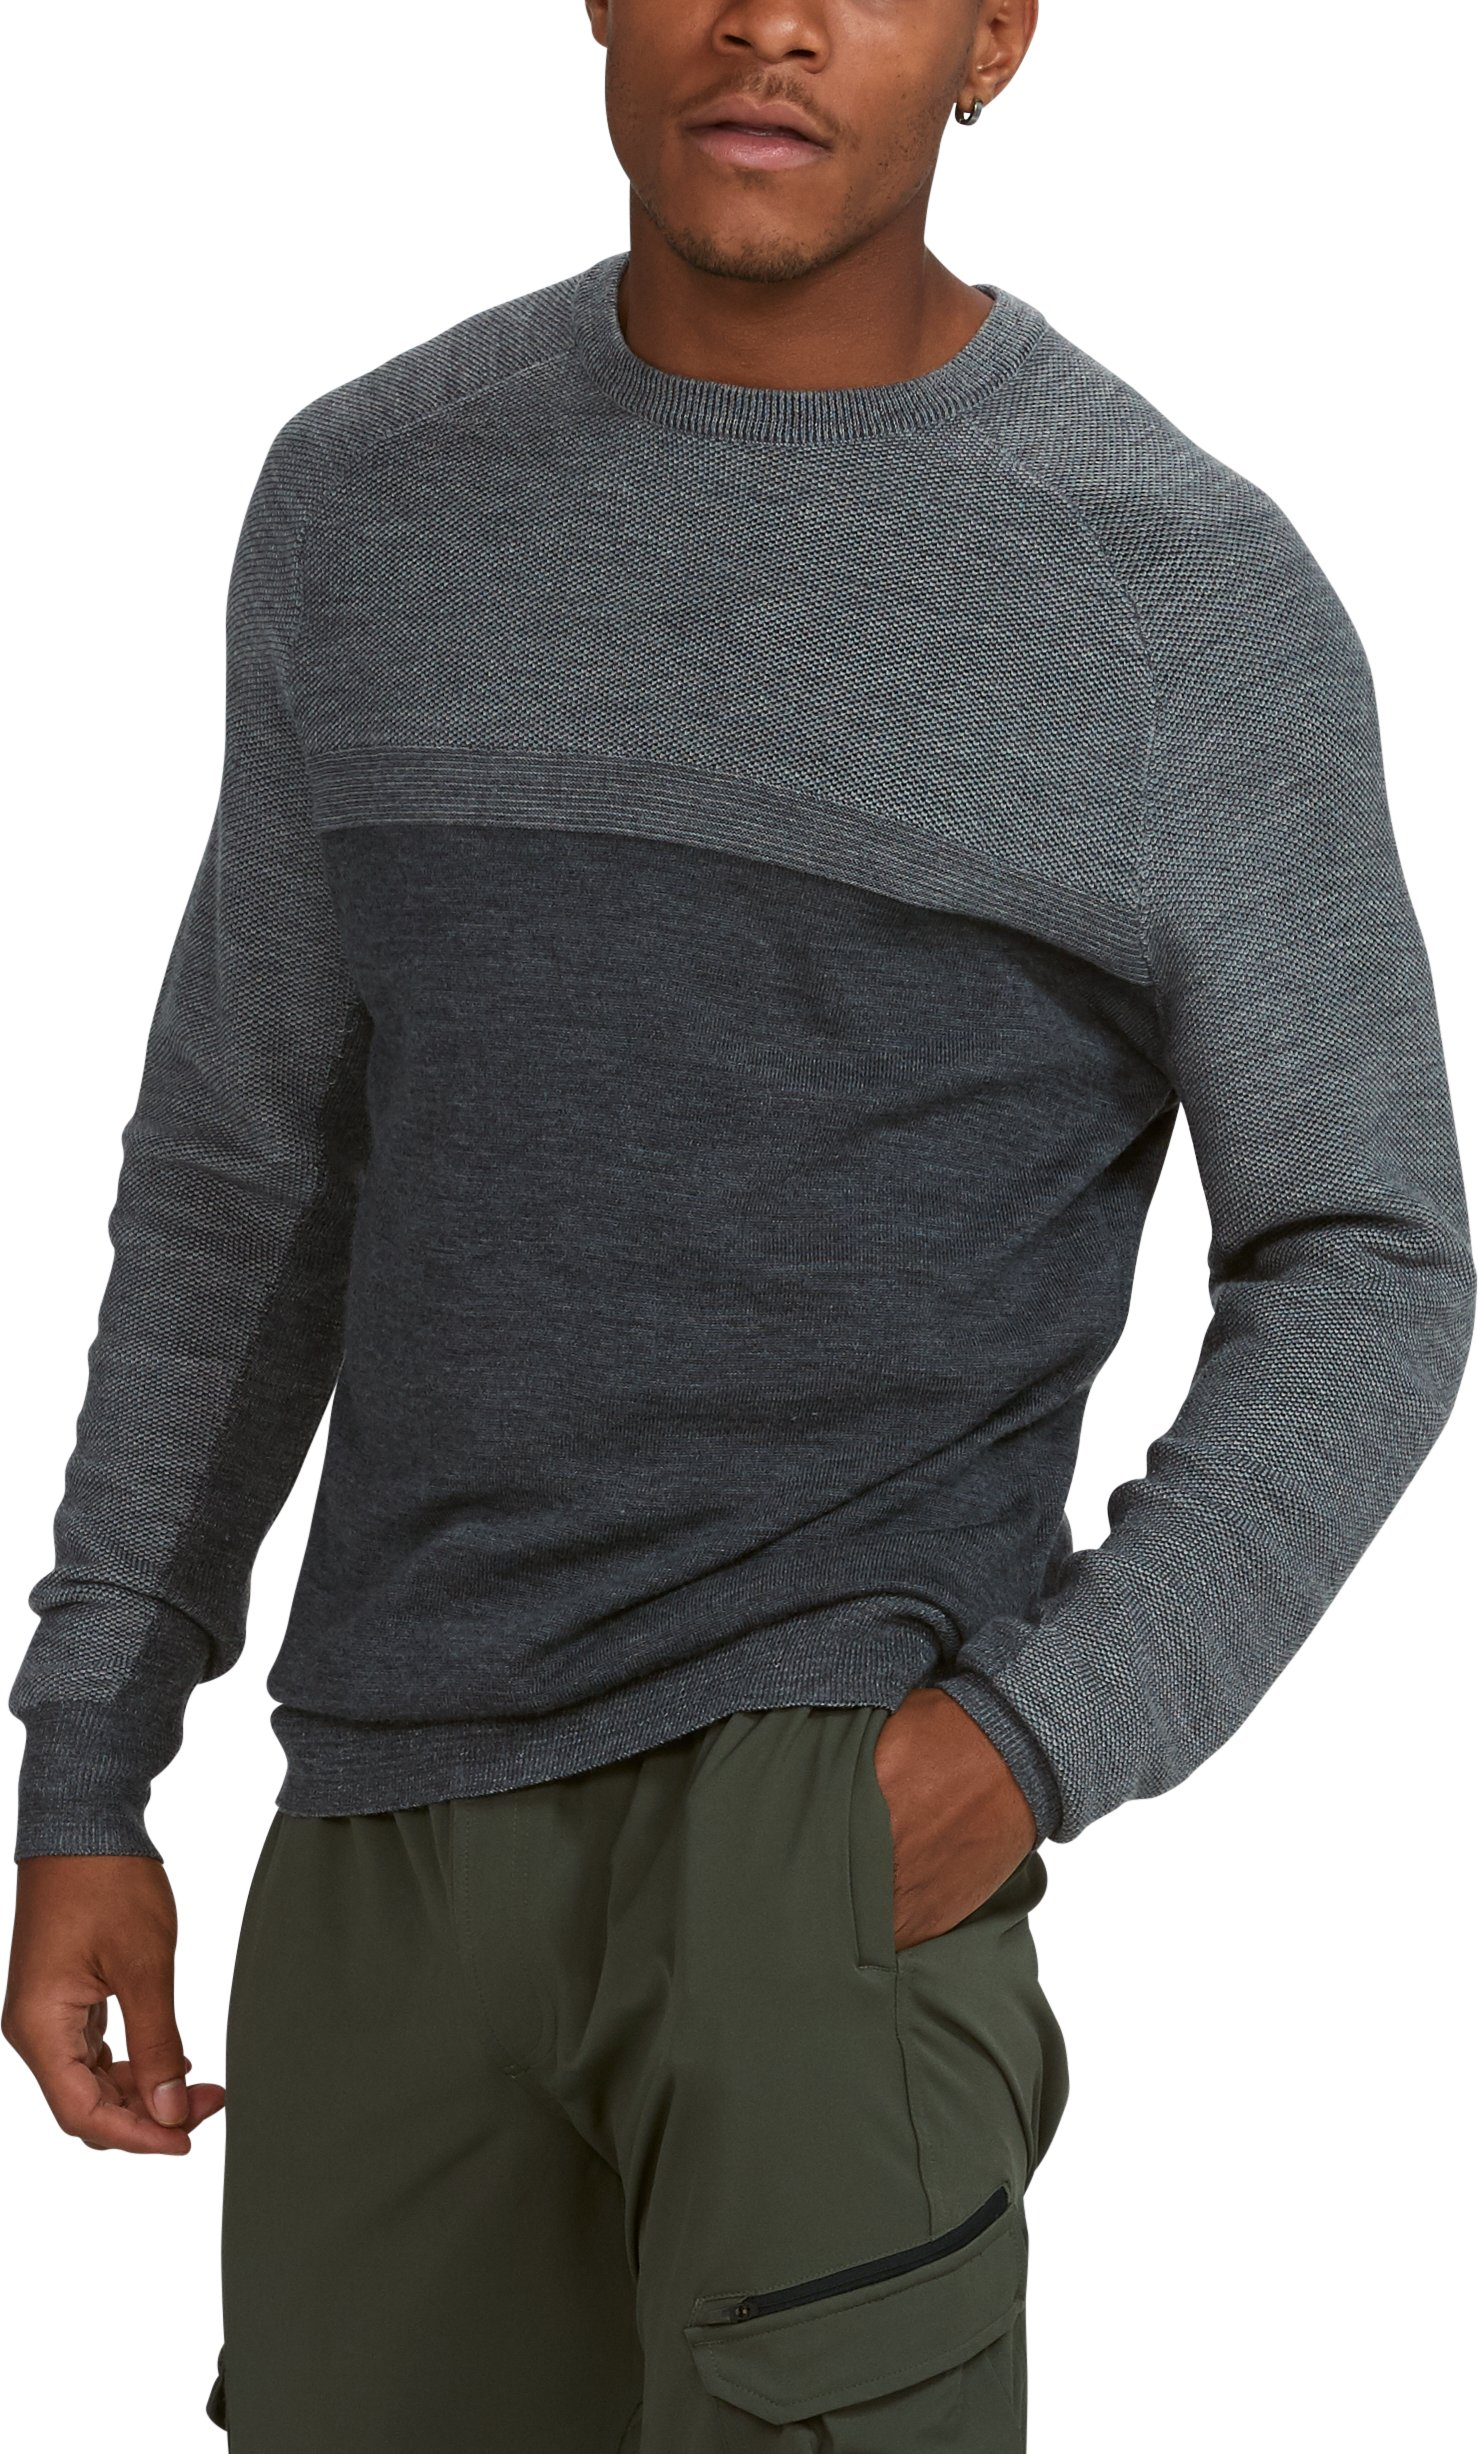 small sweaters Men's UA Threadborne Crew Sweater Keeps it classy....That being said, this sweater looks very sharp and is good quality....Haven't had a chance to take it outside yet, but it feels warm and very well made, while being soft and stylish at the same time.